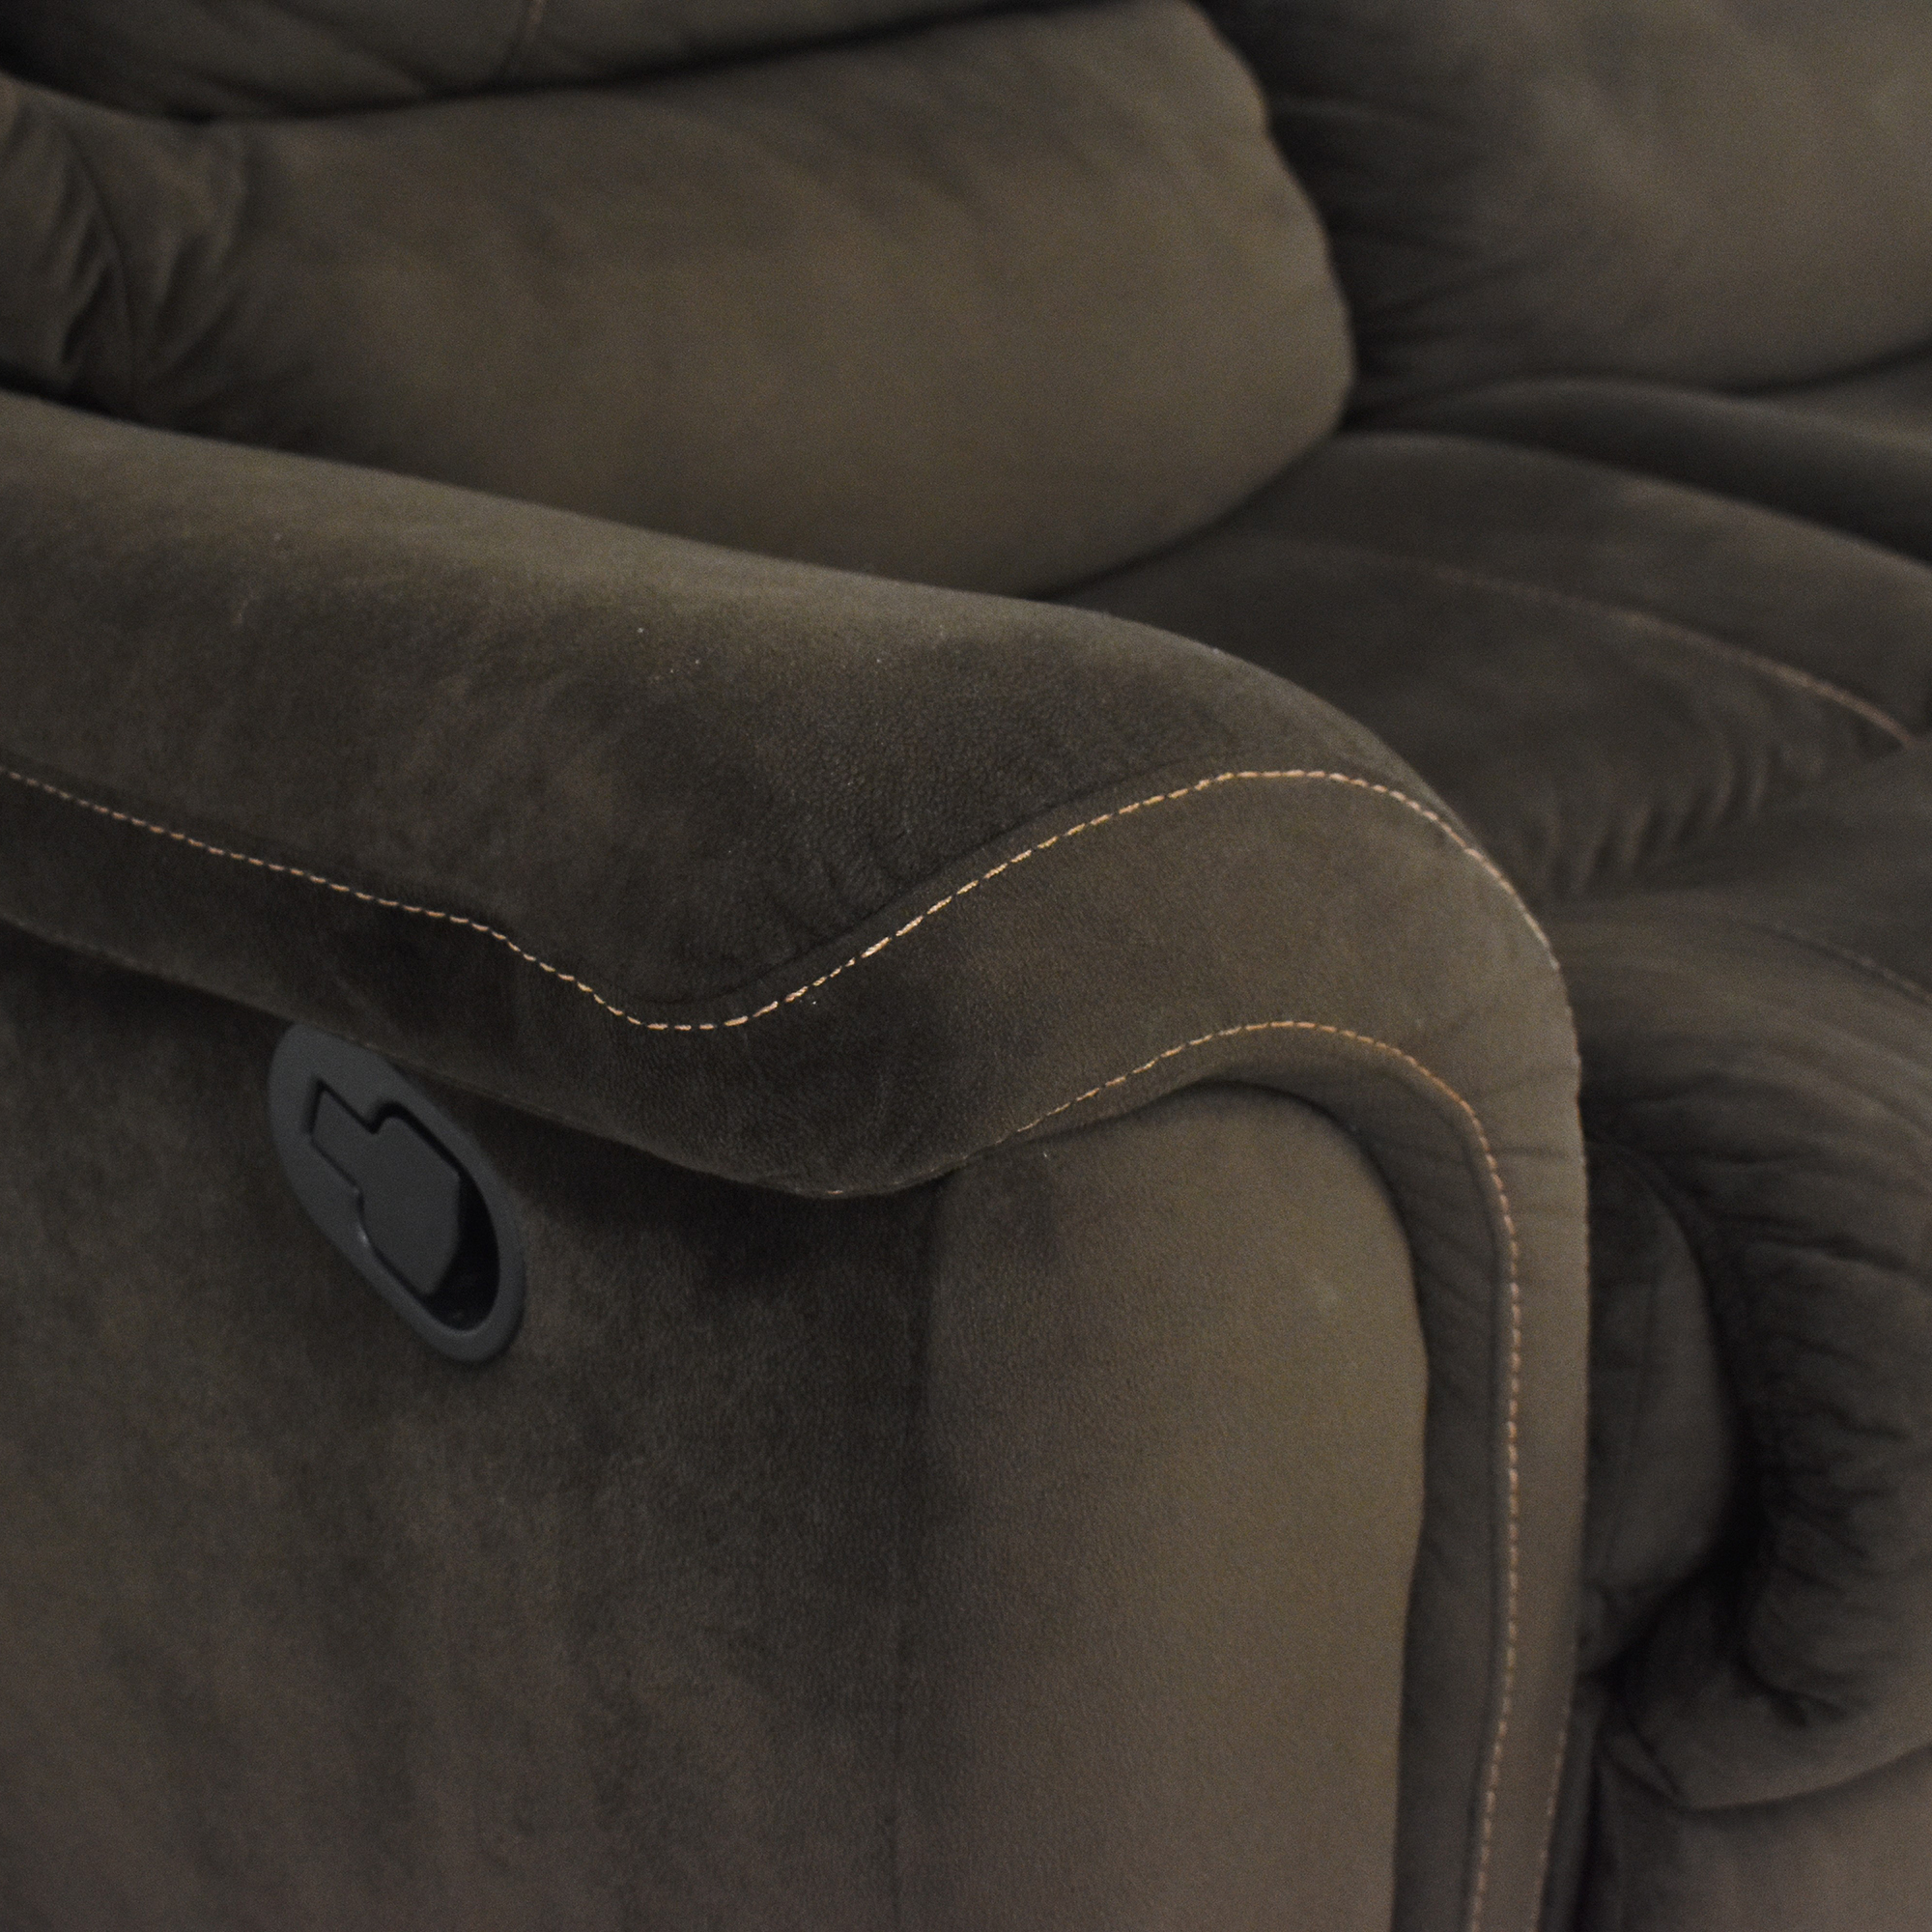 Raymour & Flanigan Raymour & Flanigan Double Recliner Loveseat ma